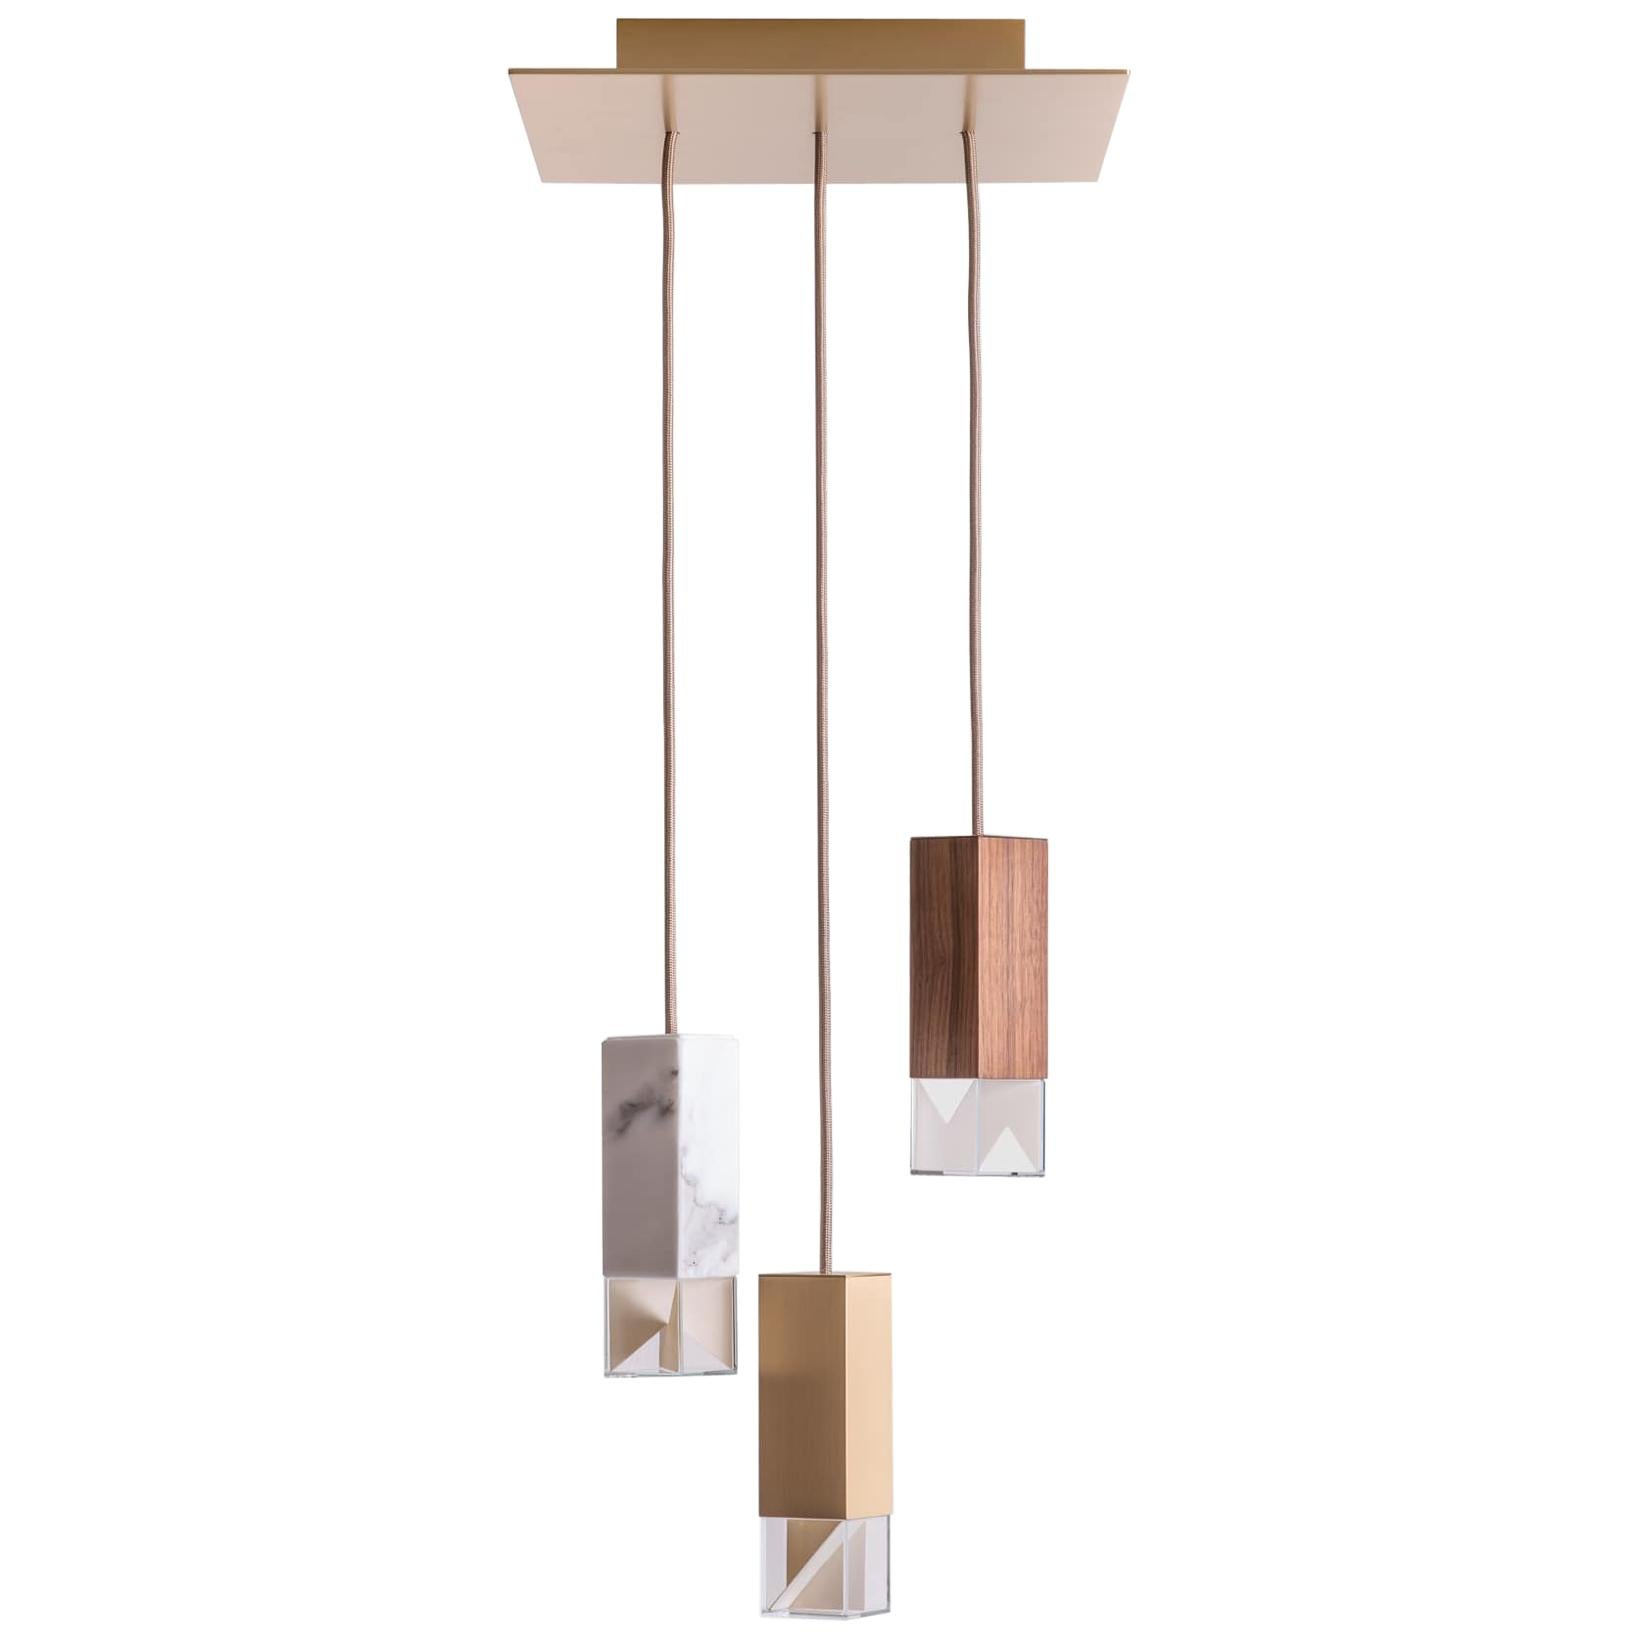 Lamp One Collection Chandelier by Formaminima